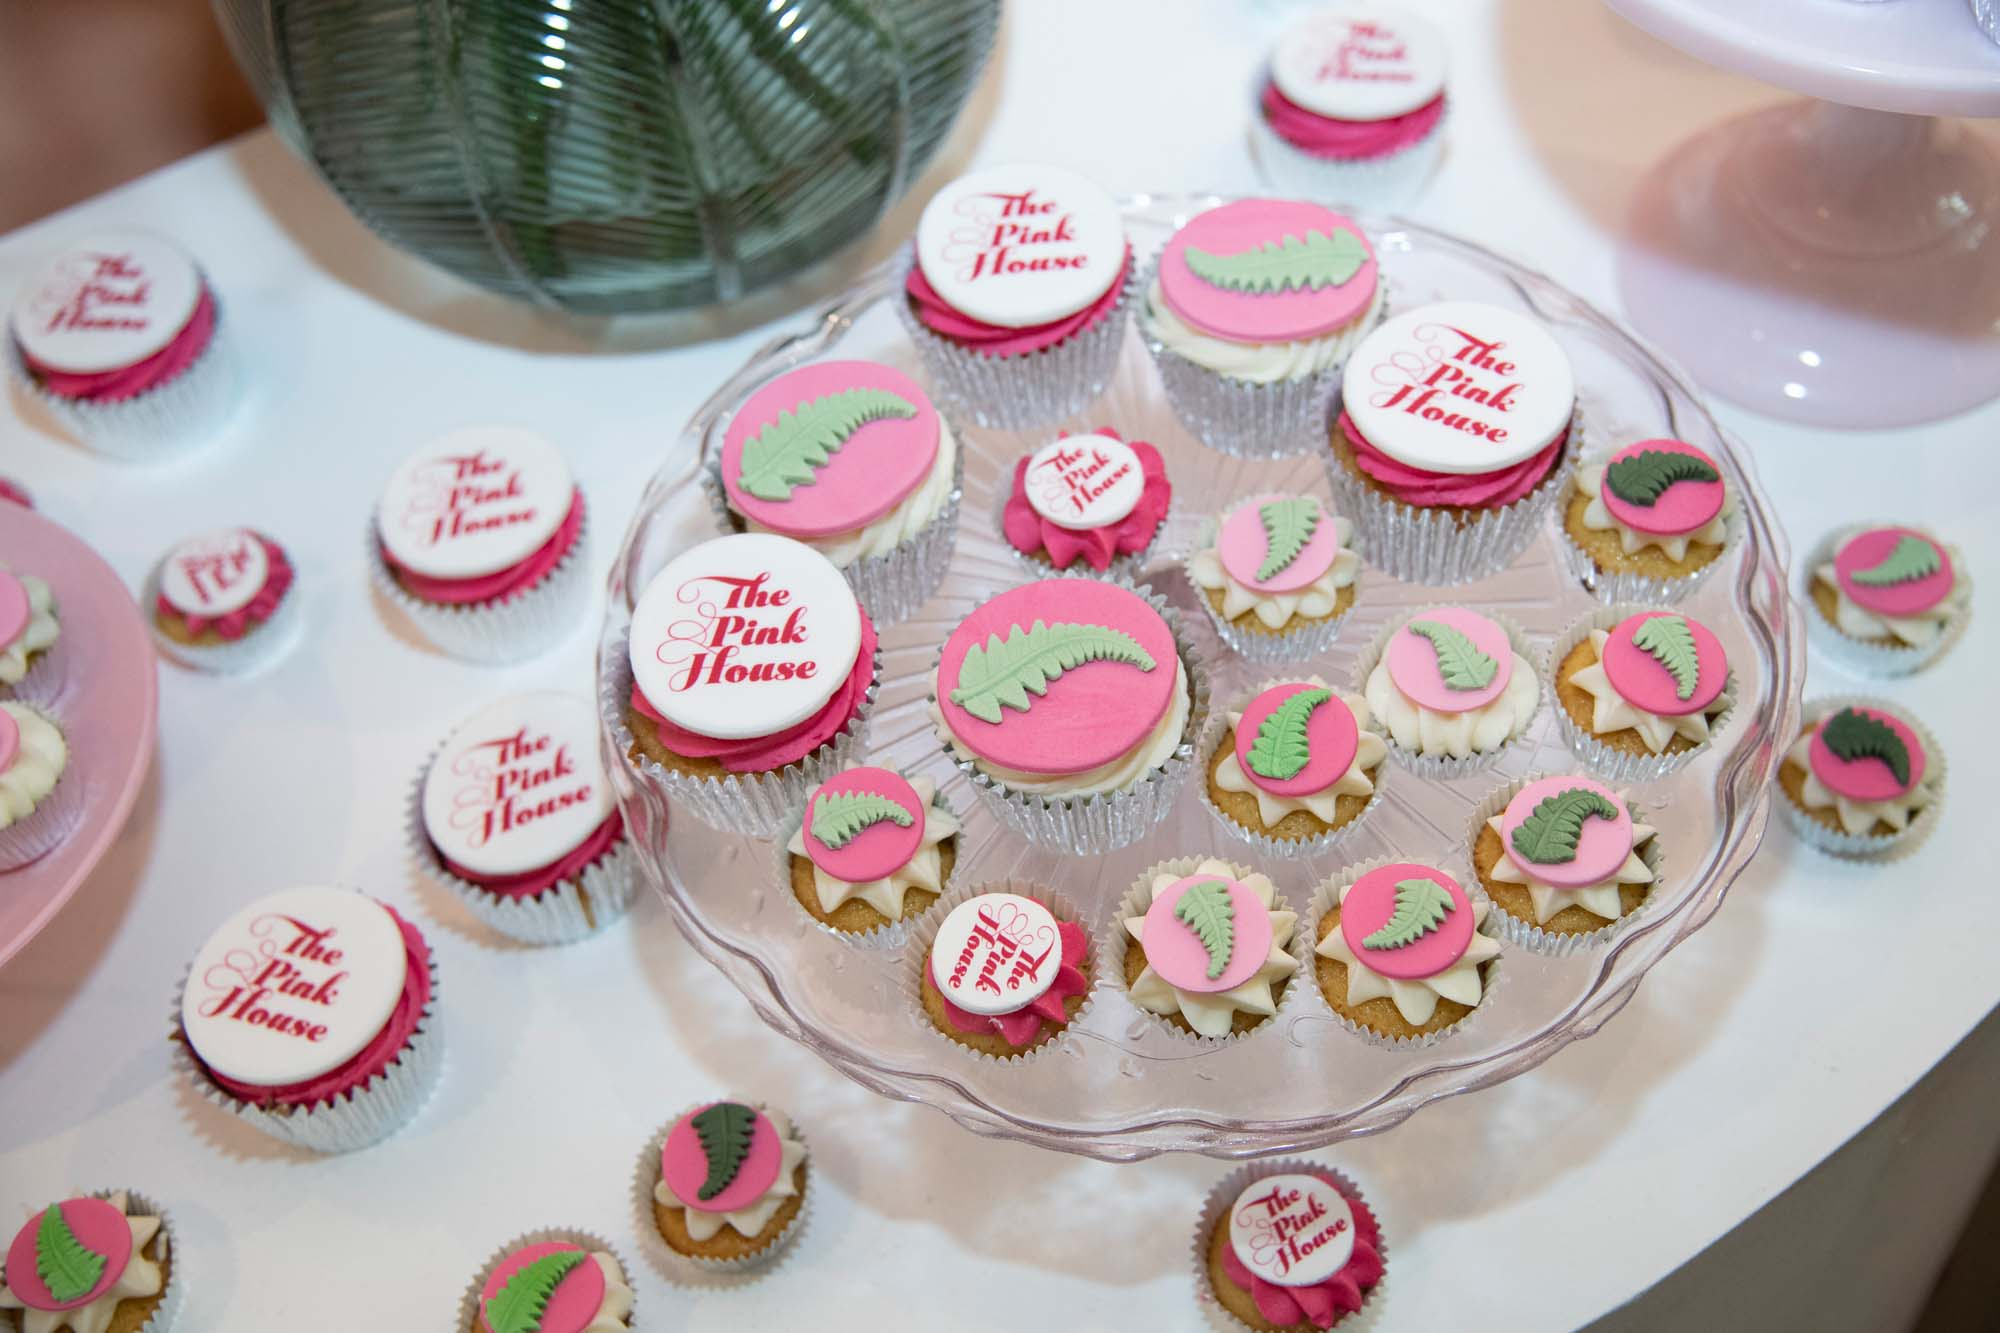 Cracking Cakes pink logo cupcakes for The Pink House